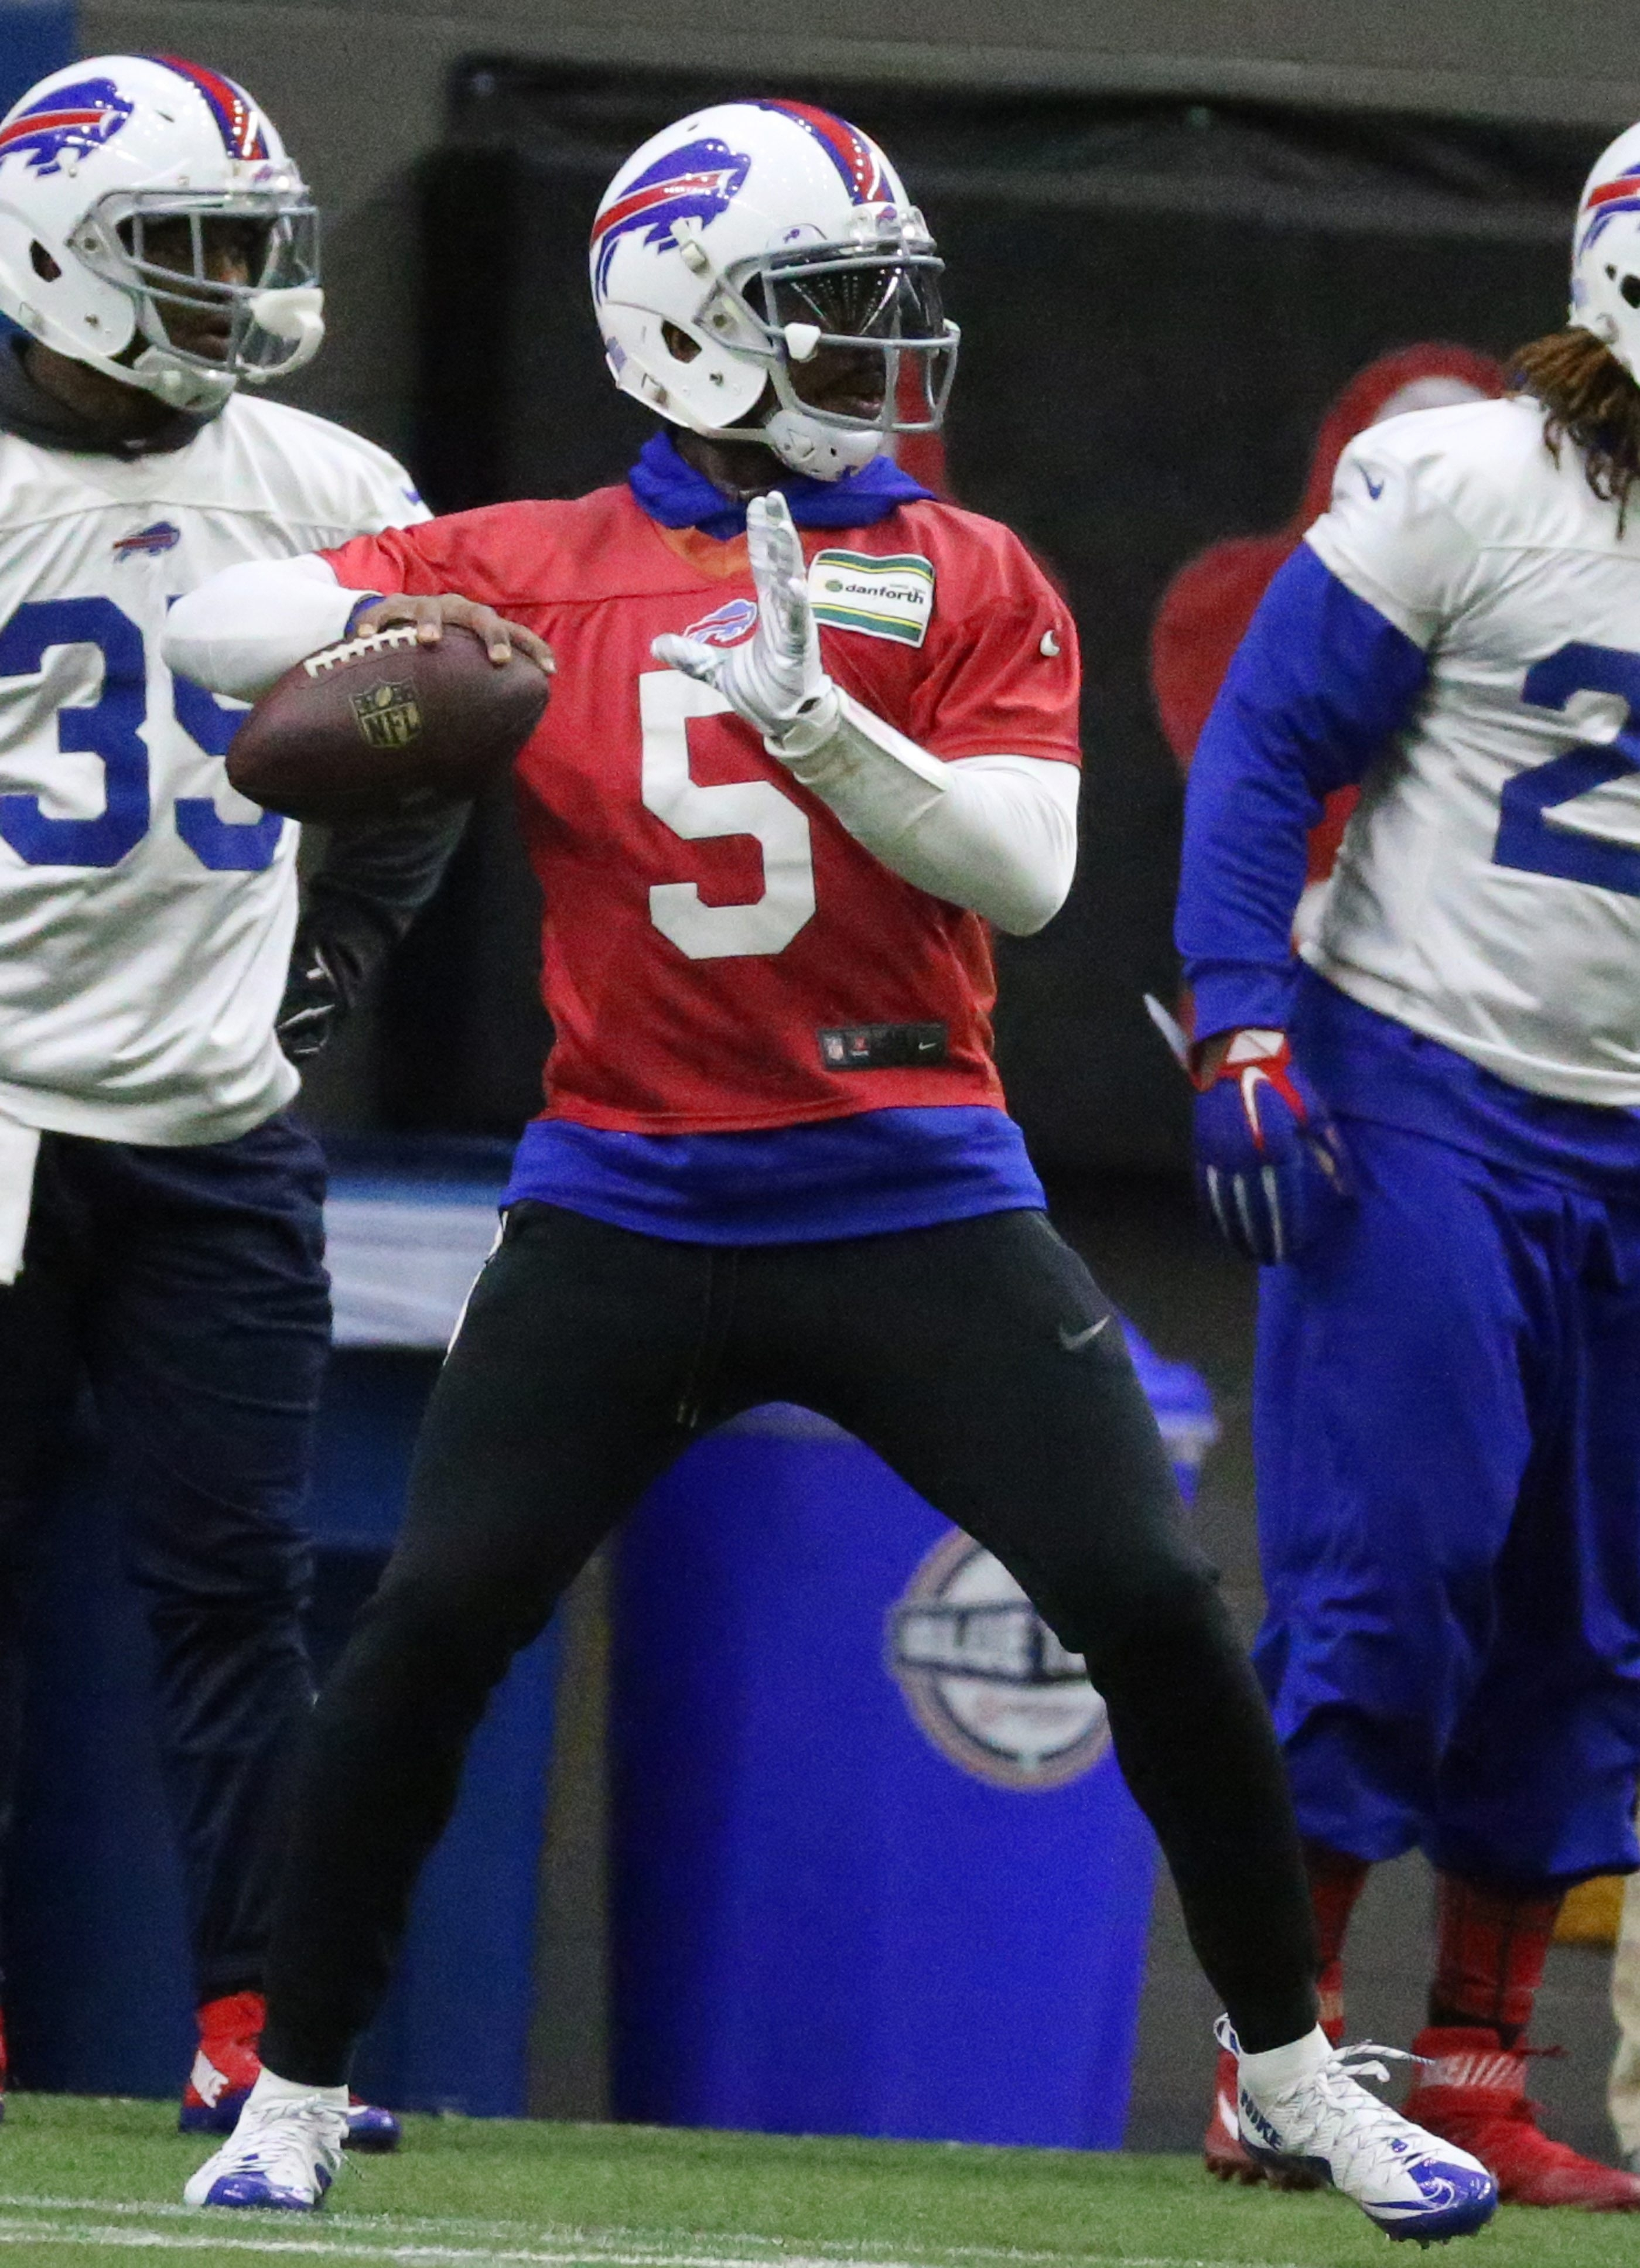 Tyrod Taylor was limited in practice Wednesday and expects to play against the Jets on Sunday.